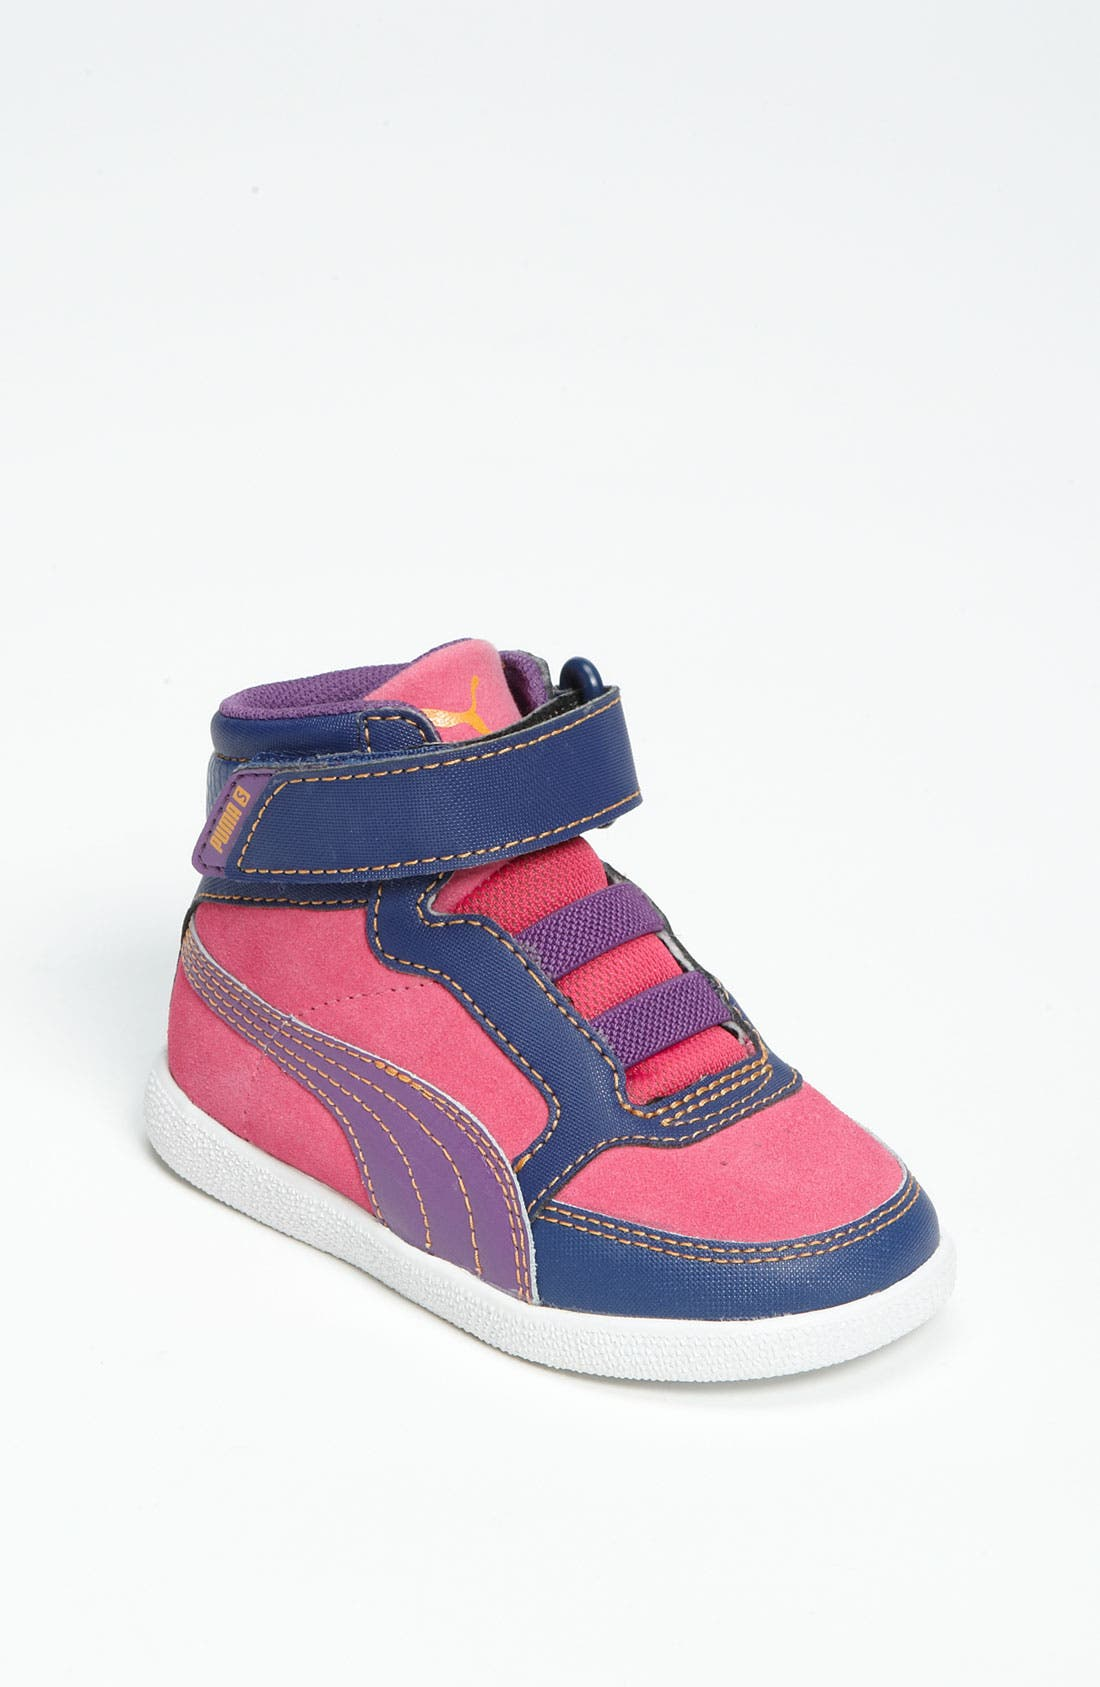 Alternate Image 1 Selected - PUMA 'Skylaa' Sneaker (Toddler, Little Kid & Big Kid)